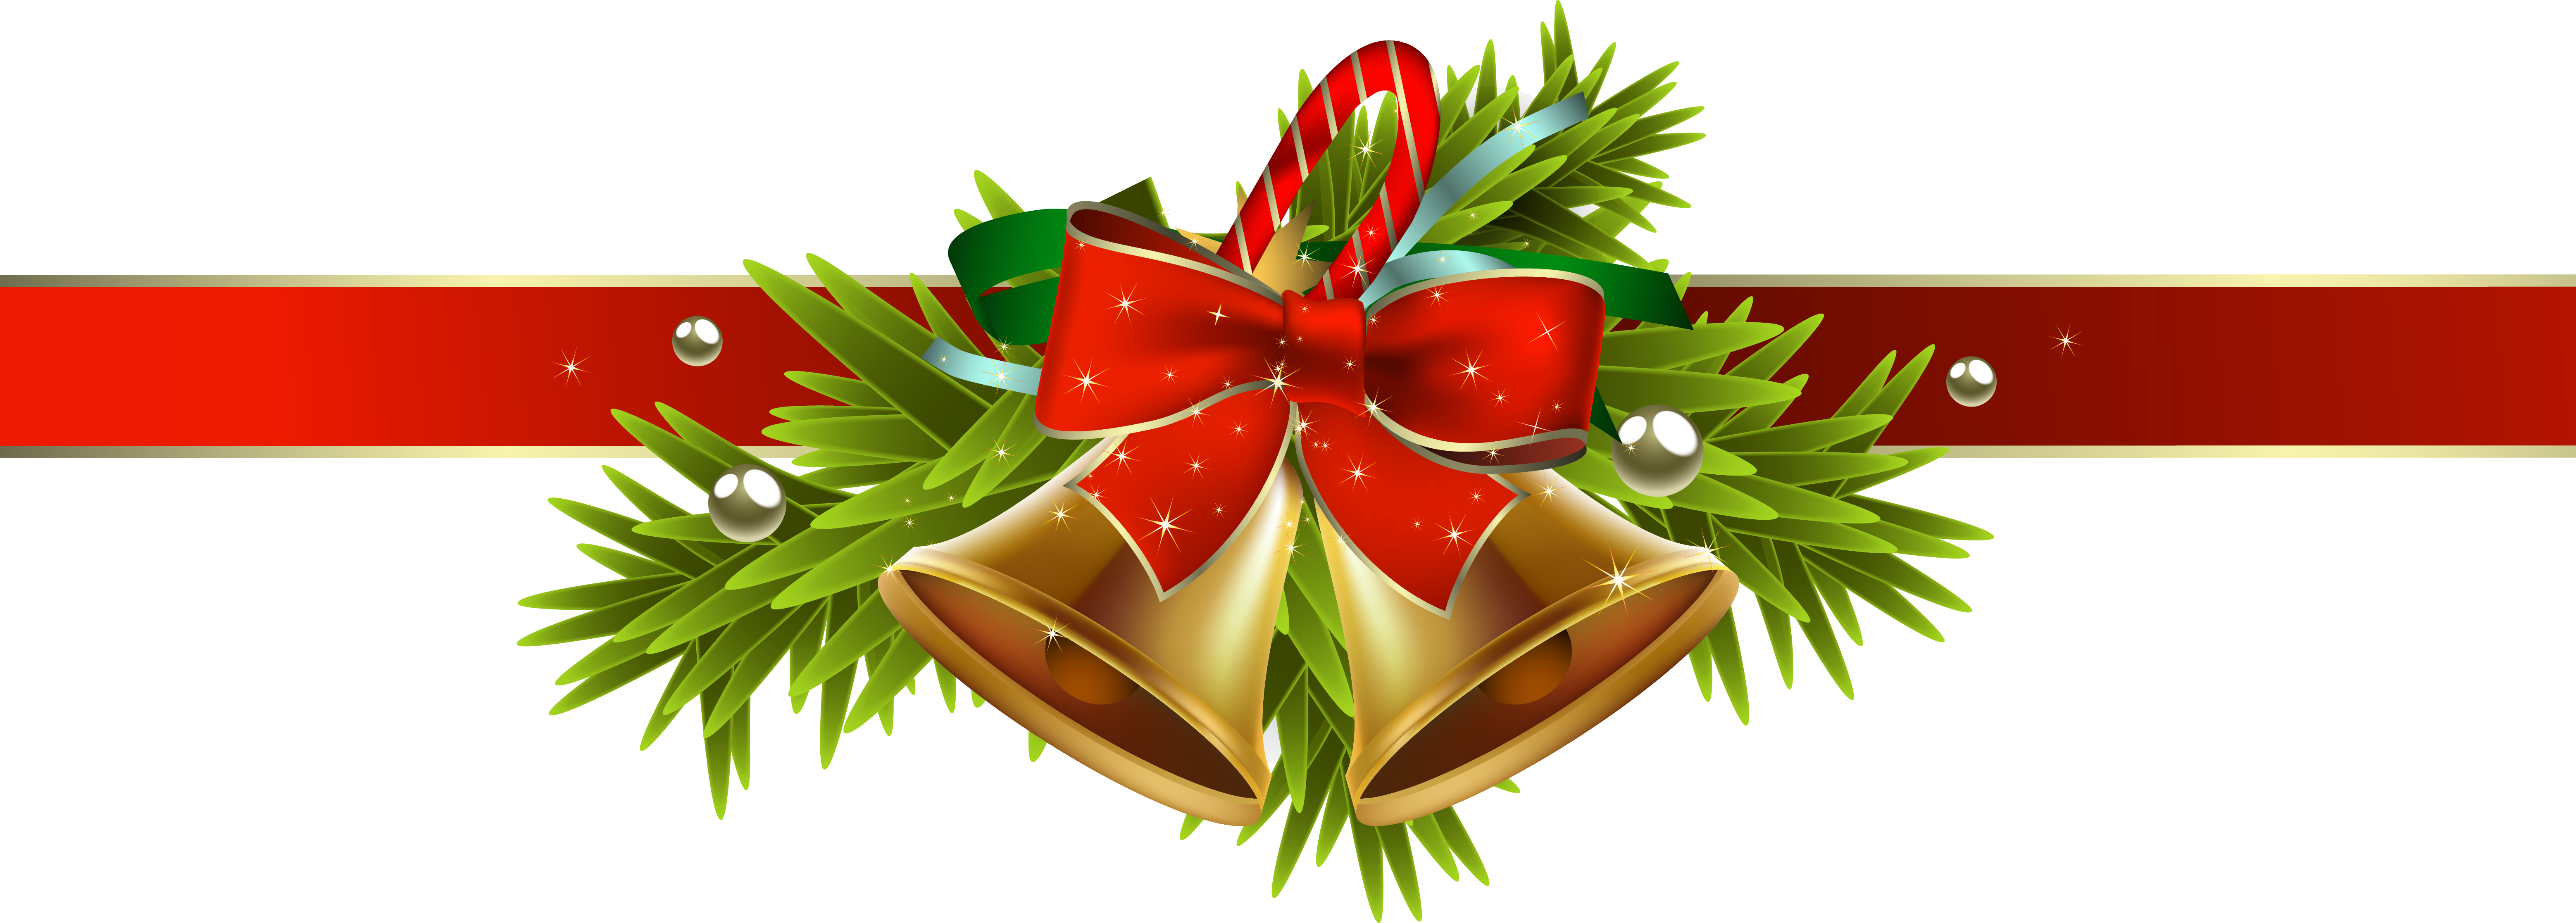 christmas png download transparent background #9593